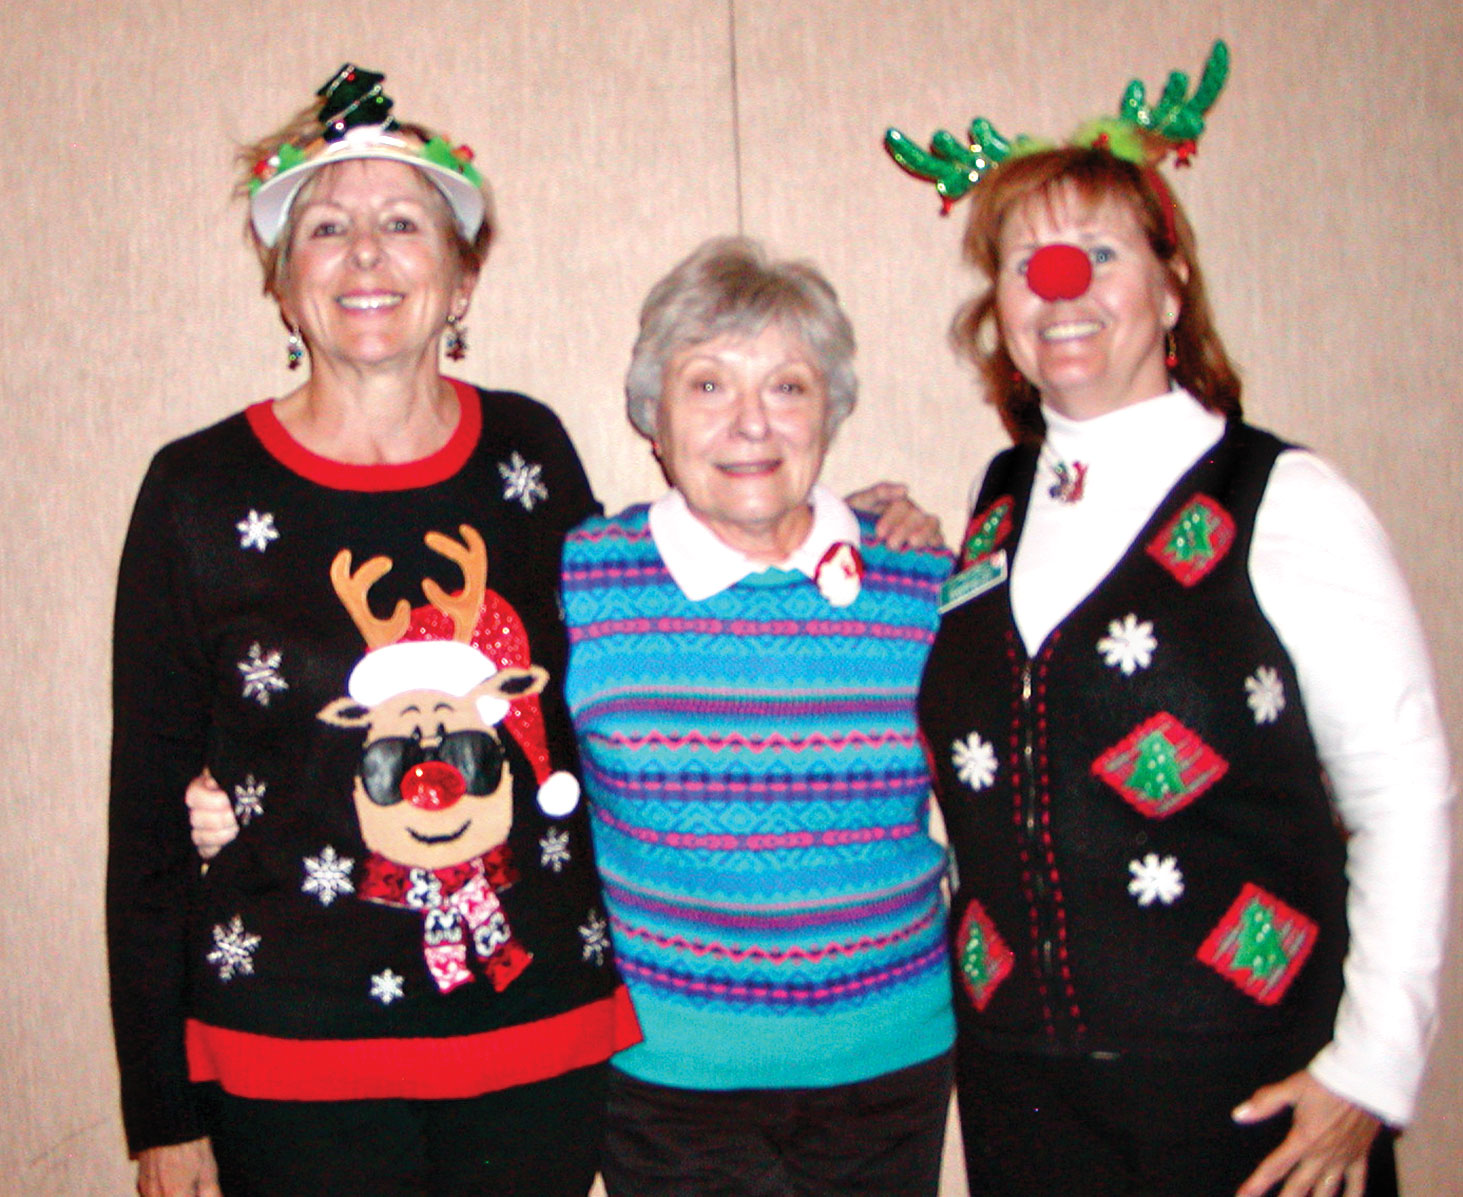 Left to right: Joyce Sutay, JoAnn Wilbour, Karen Richey; photo by Holly Riviere